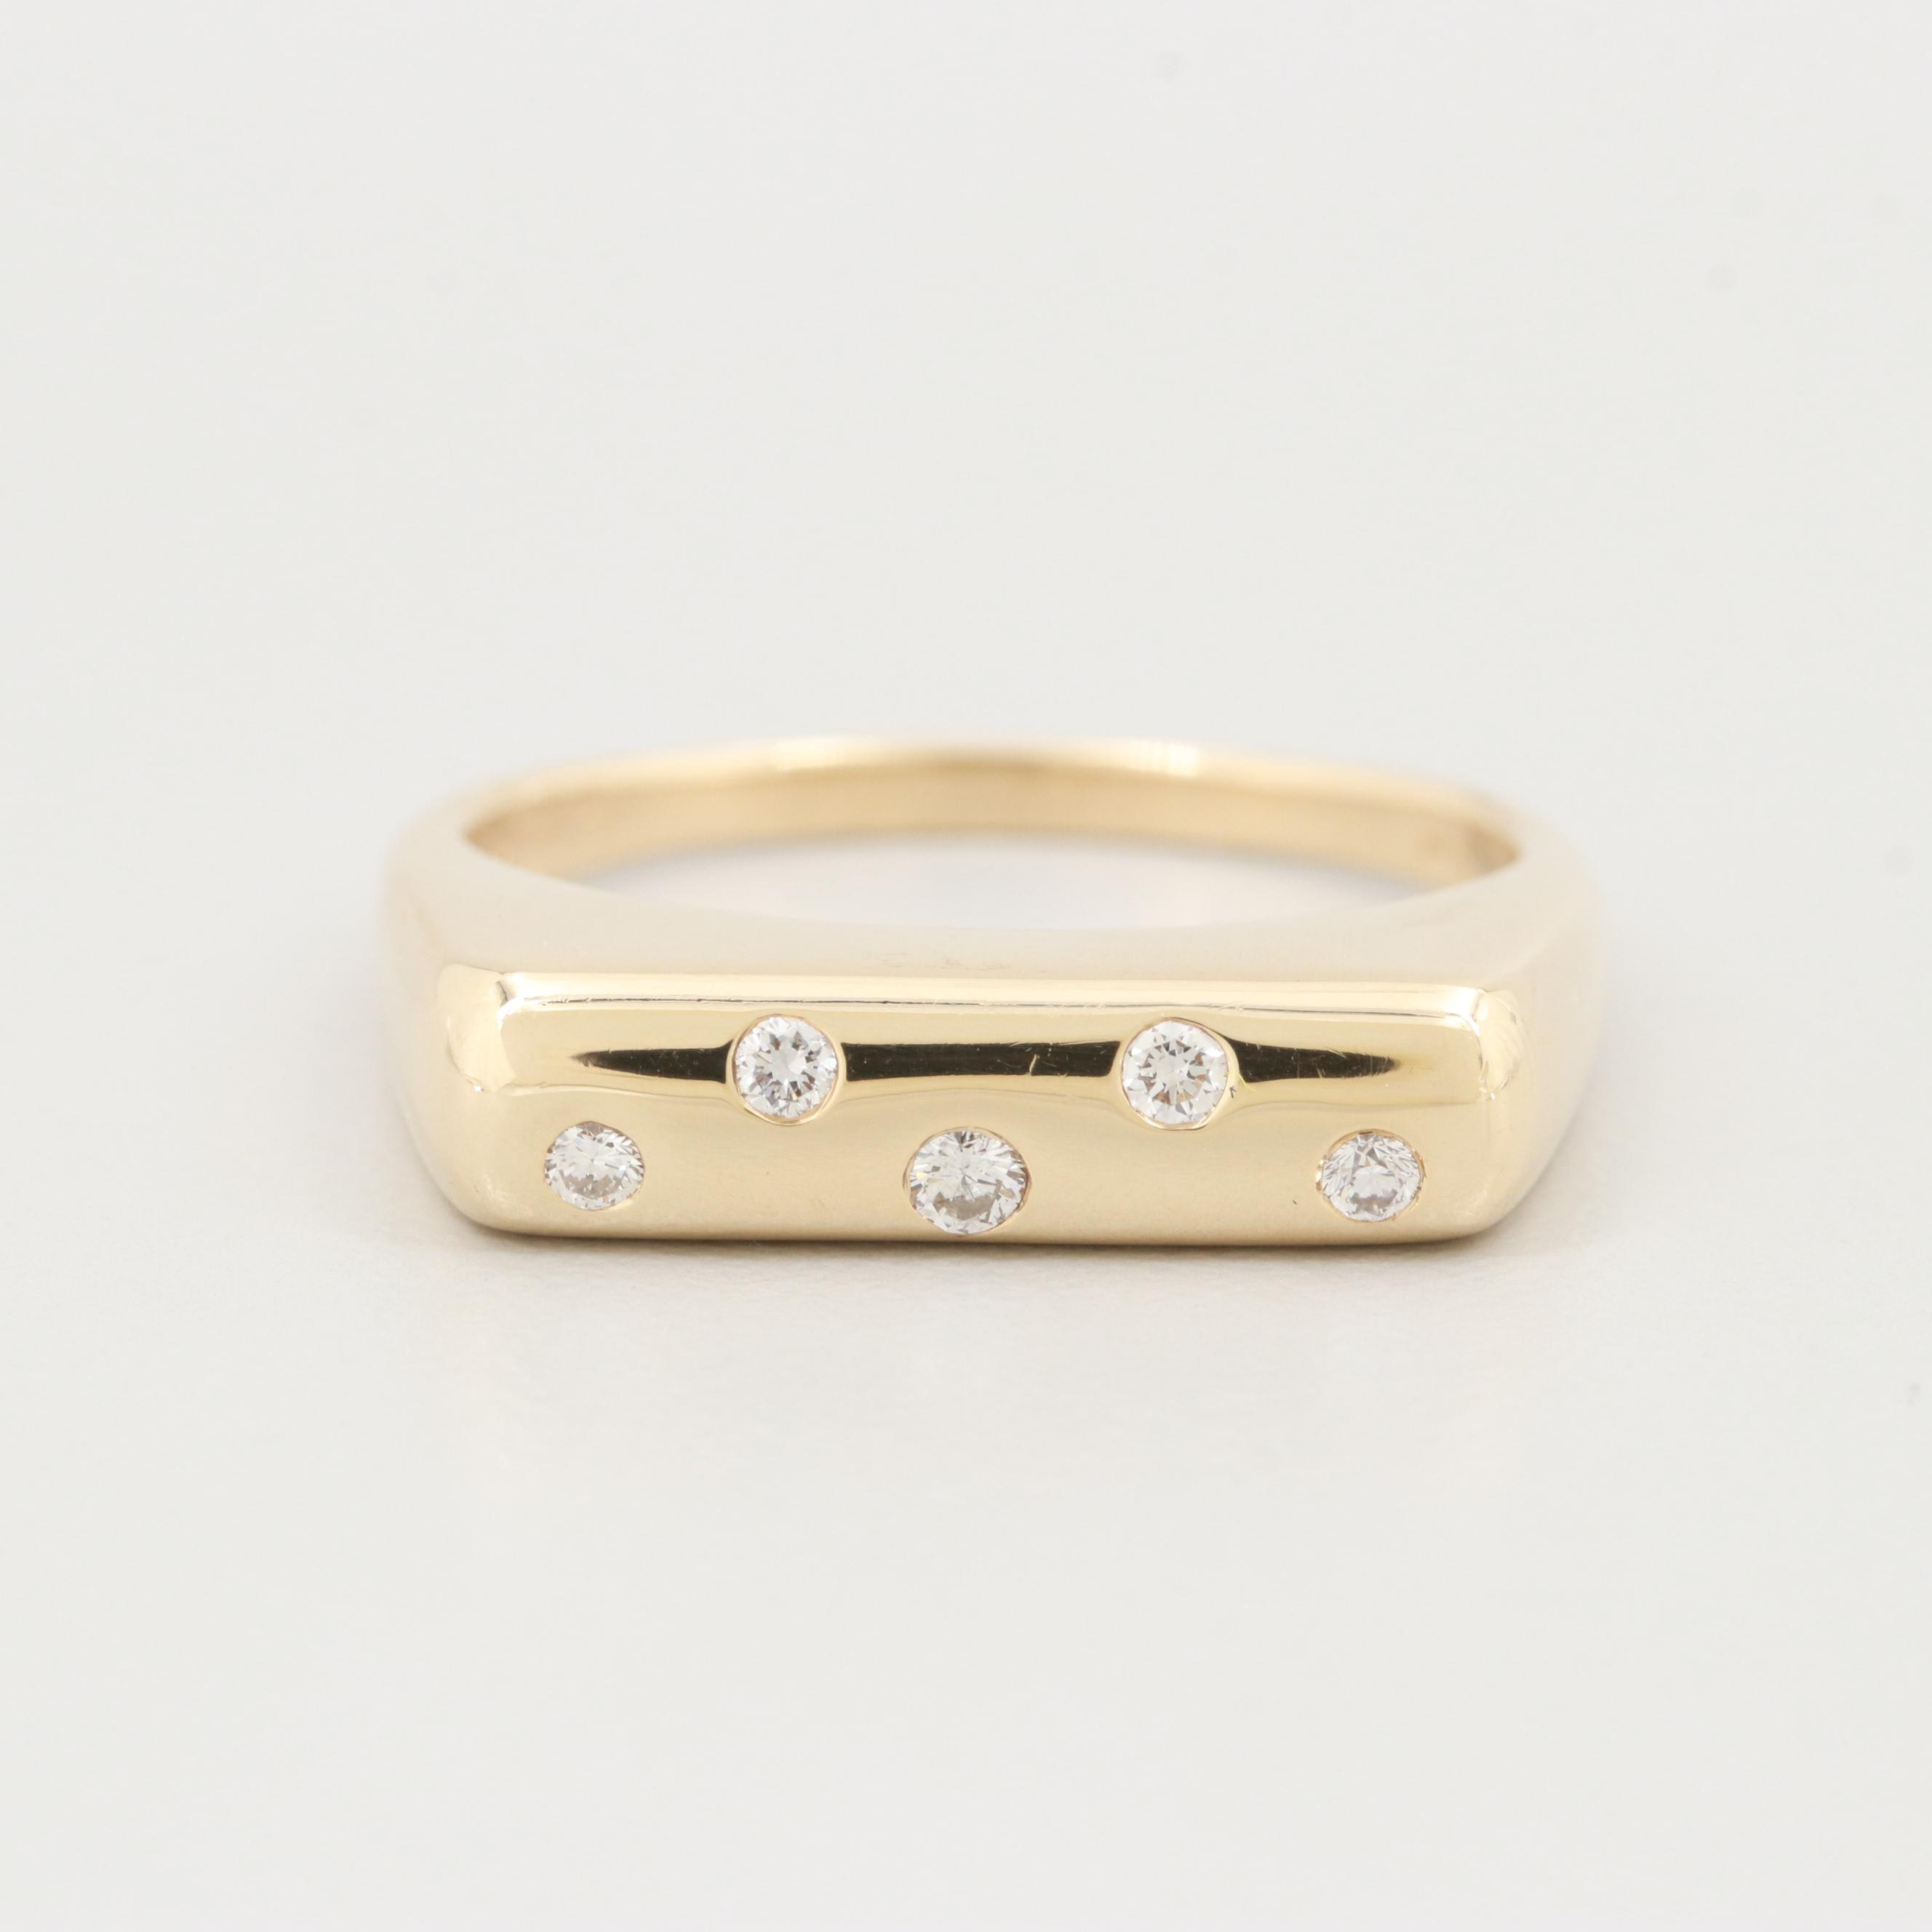 Sonia Bitton 14K Yellow Gold Diamond Ring